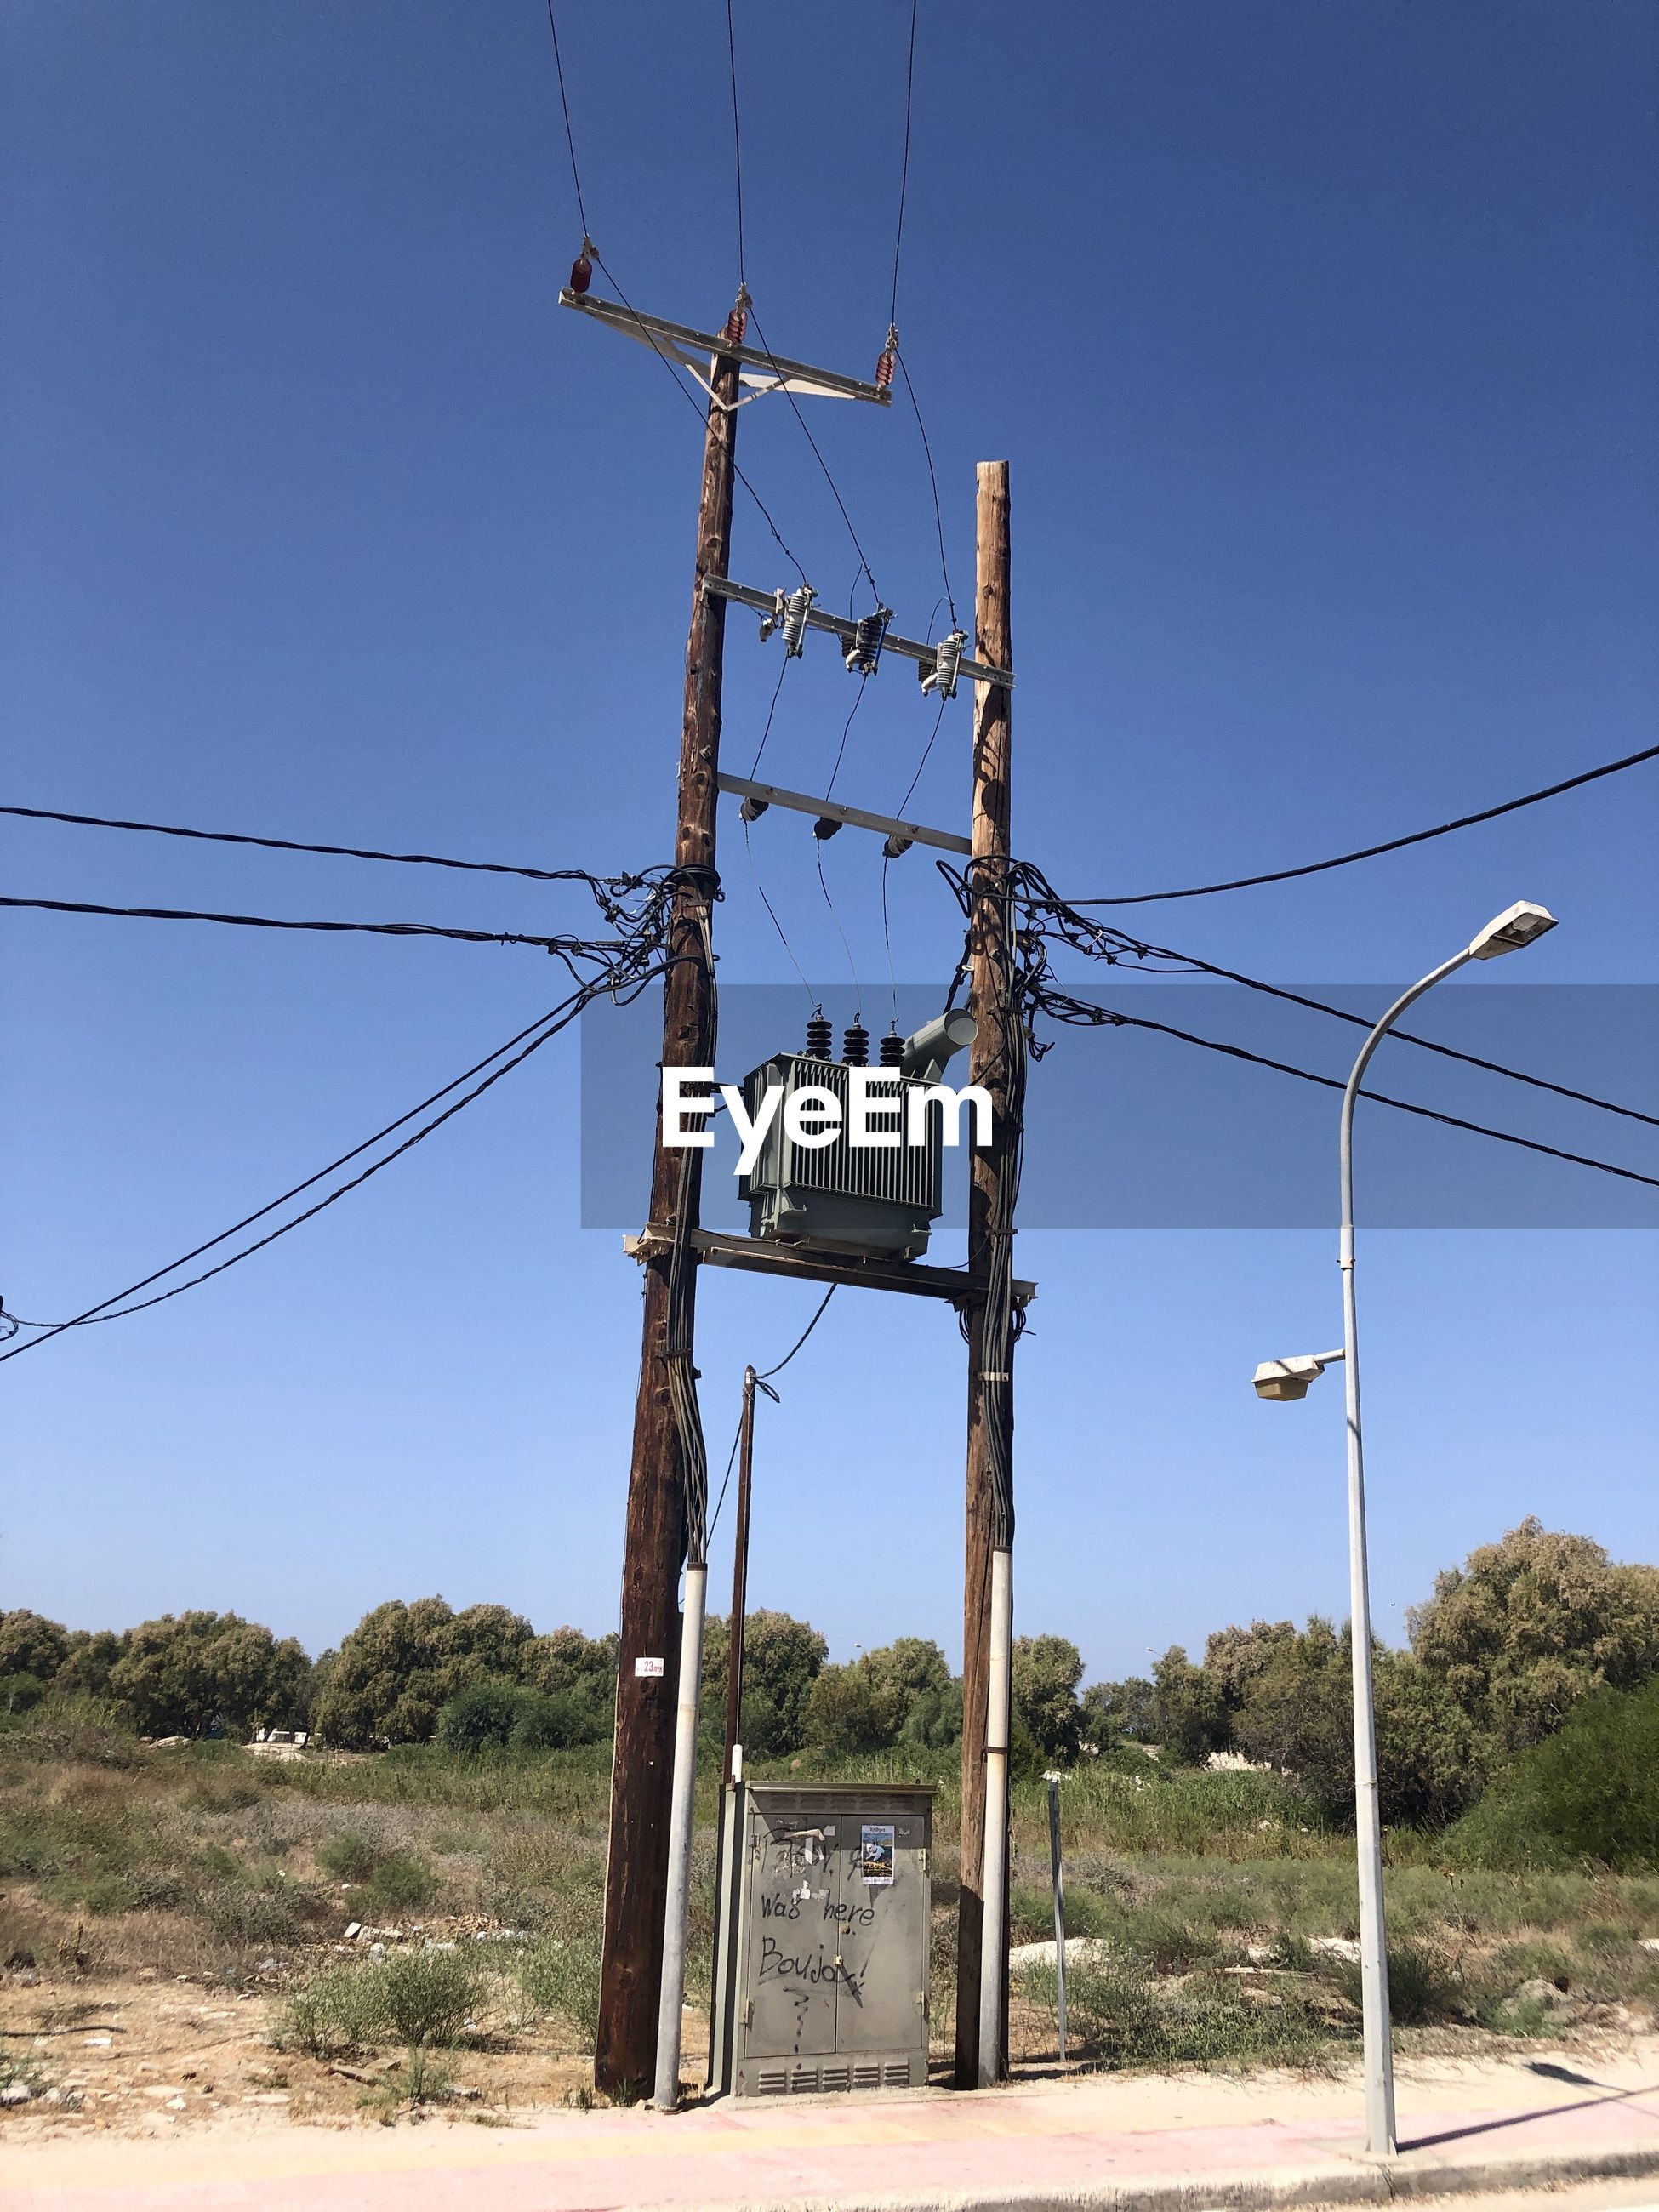 LOW ANGLE VIEW OF ELECTRICITY PYLONS ON FIELD AGAINST CLEAR SKY